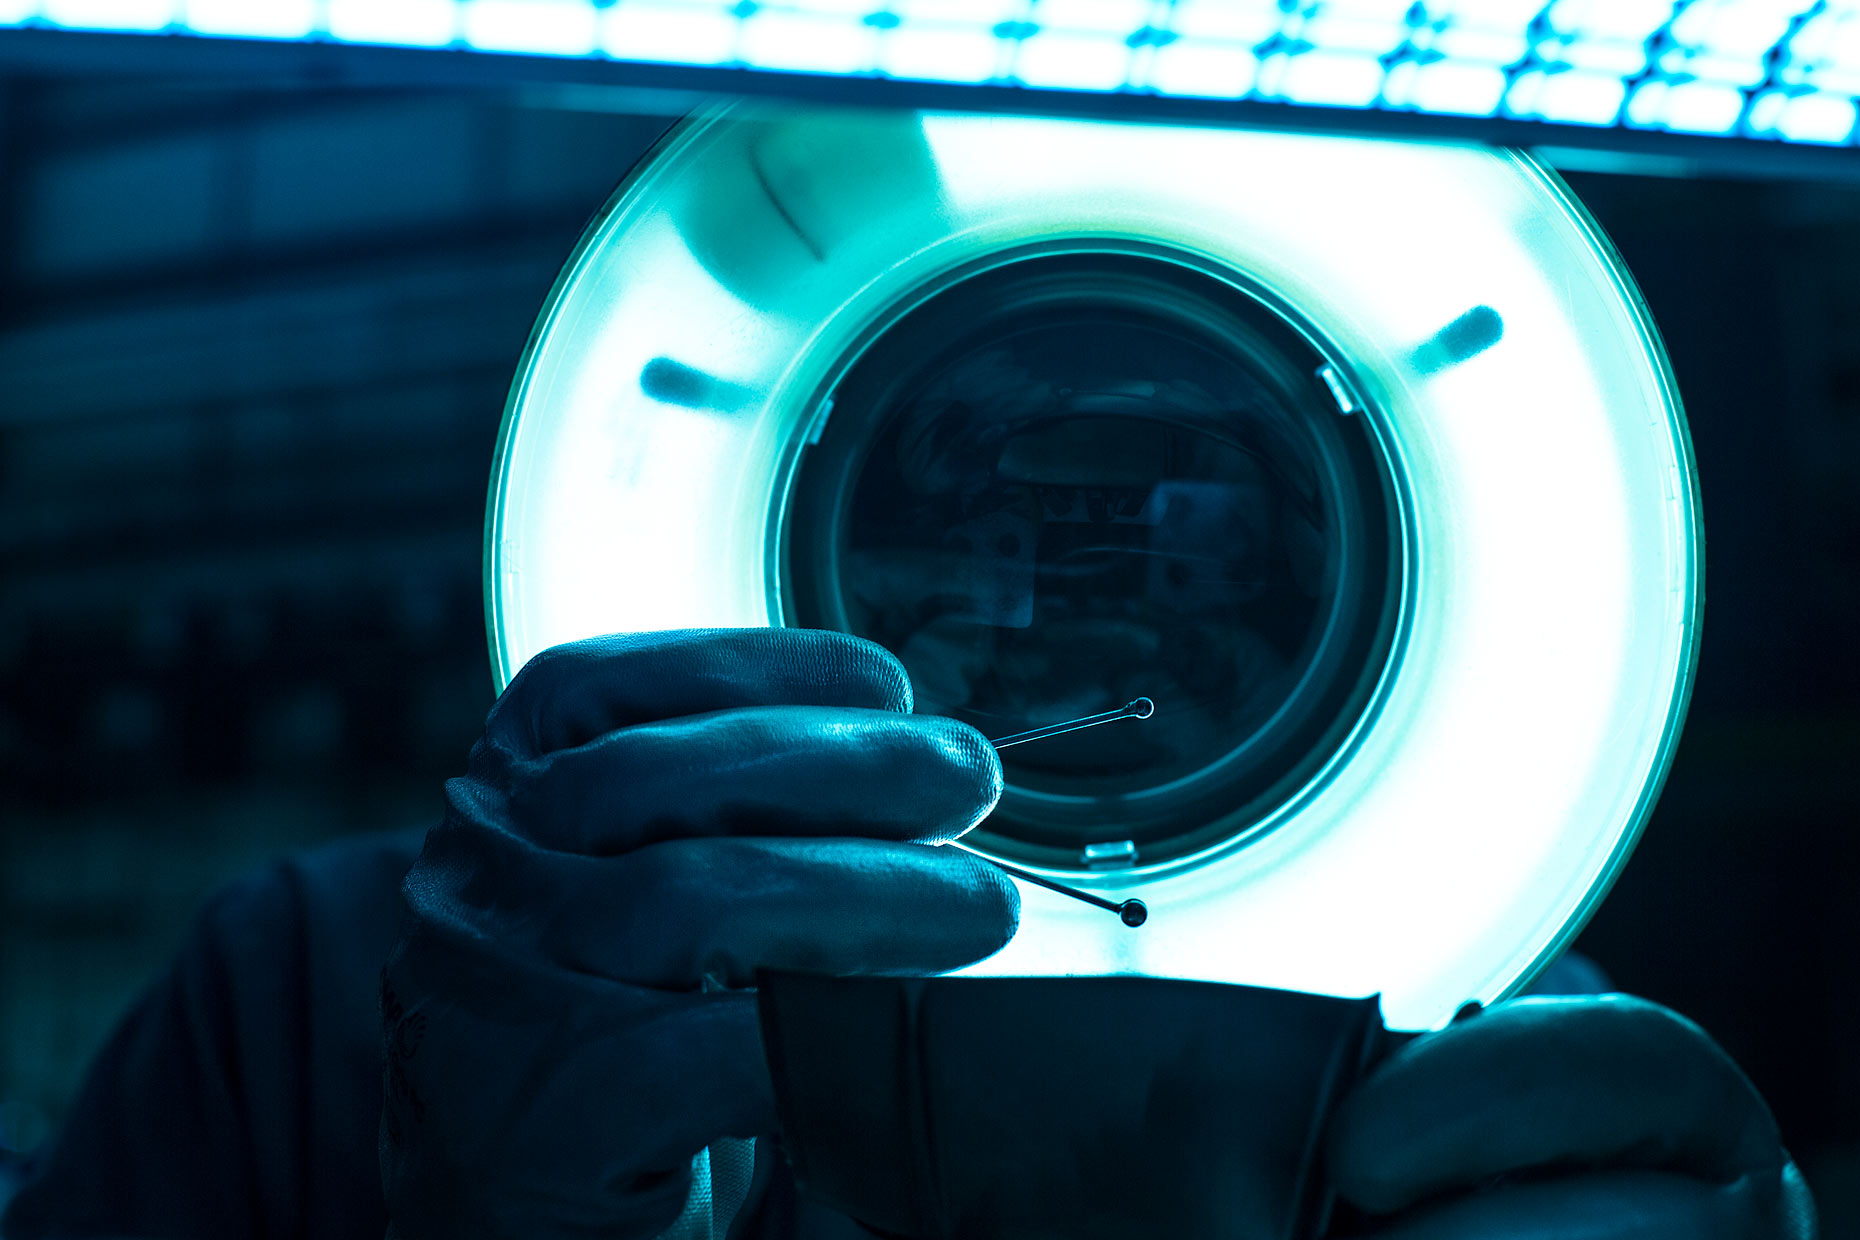 A technician inspects an instrument under LED magnifier | Scott Gable industrial photographer